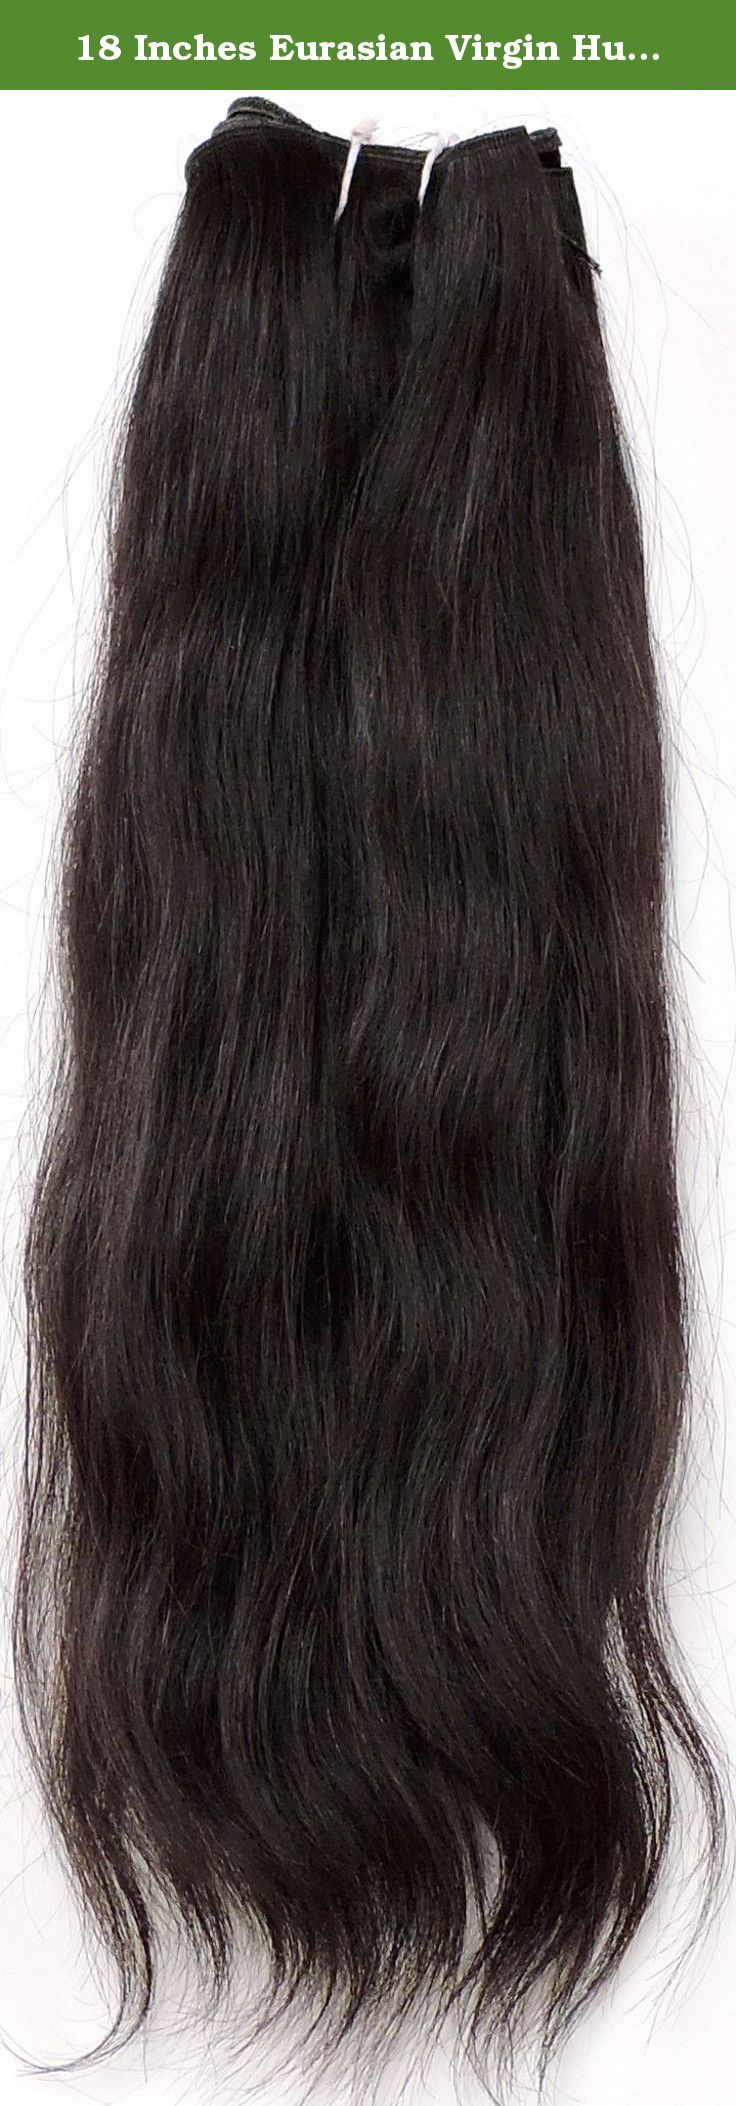 18 Inches Eurasian Virgin Human Hair Extensions W809 This Bundle Is